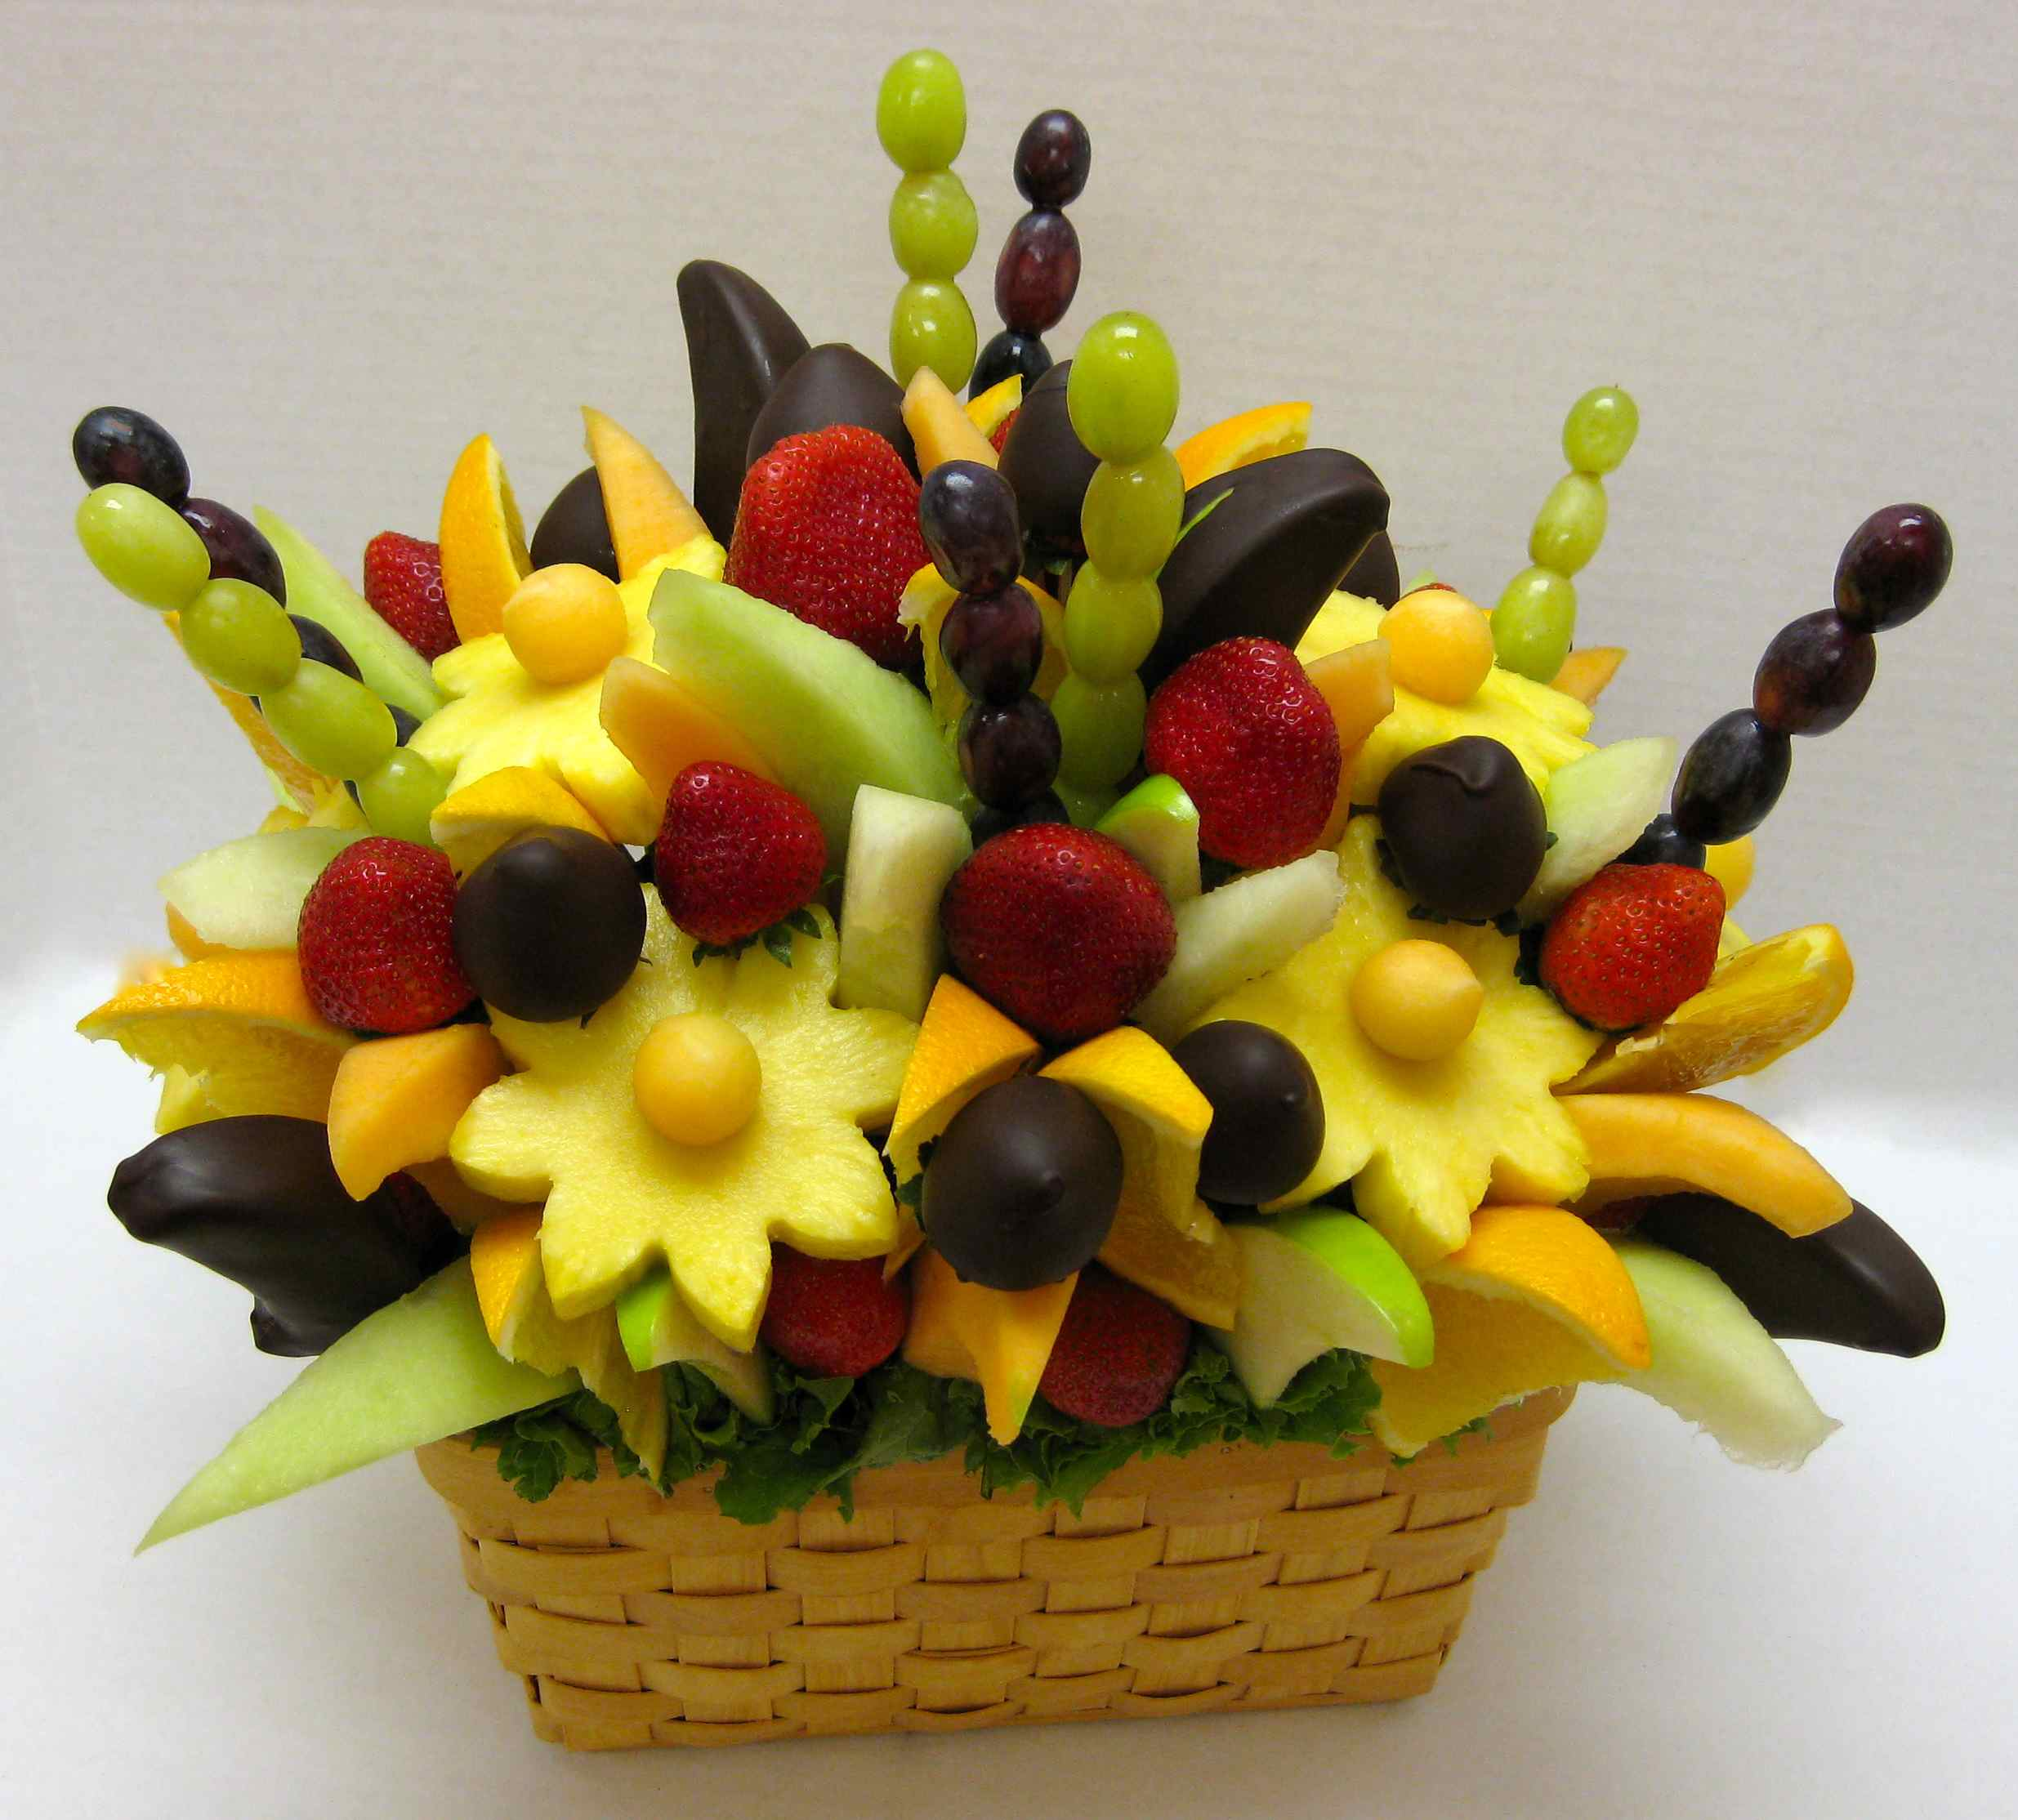 How To Make Your Own Edible Fruit Arrangement Crazeedaisee